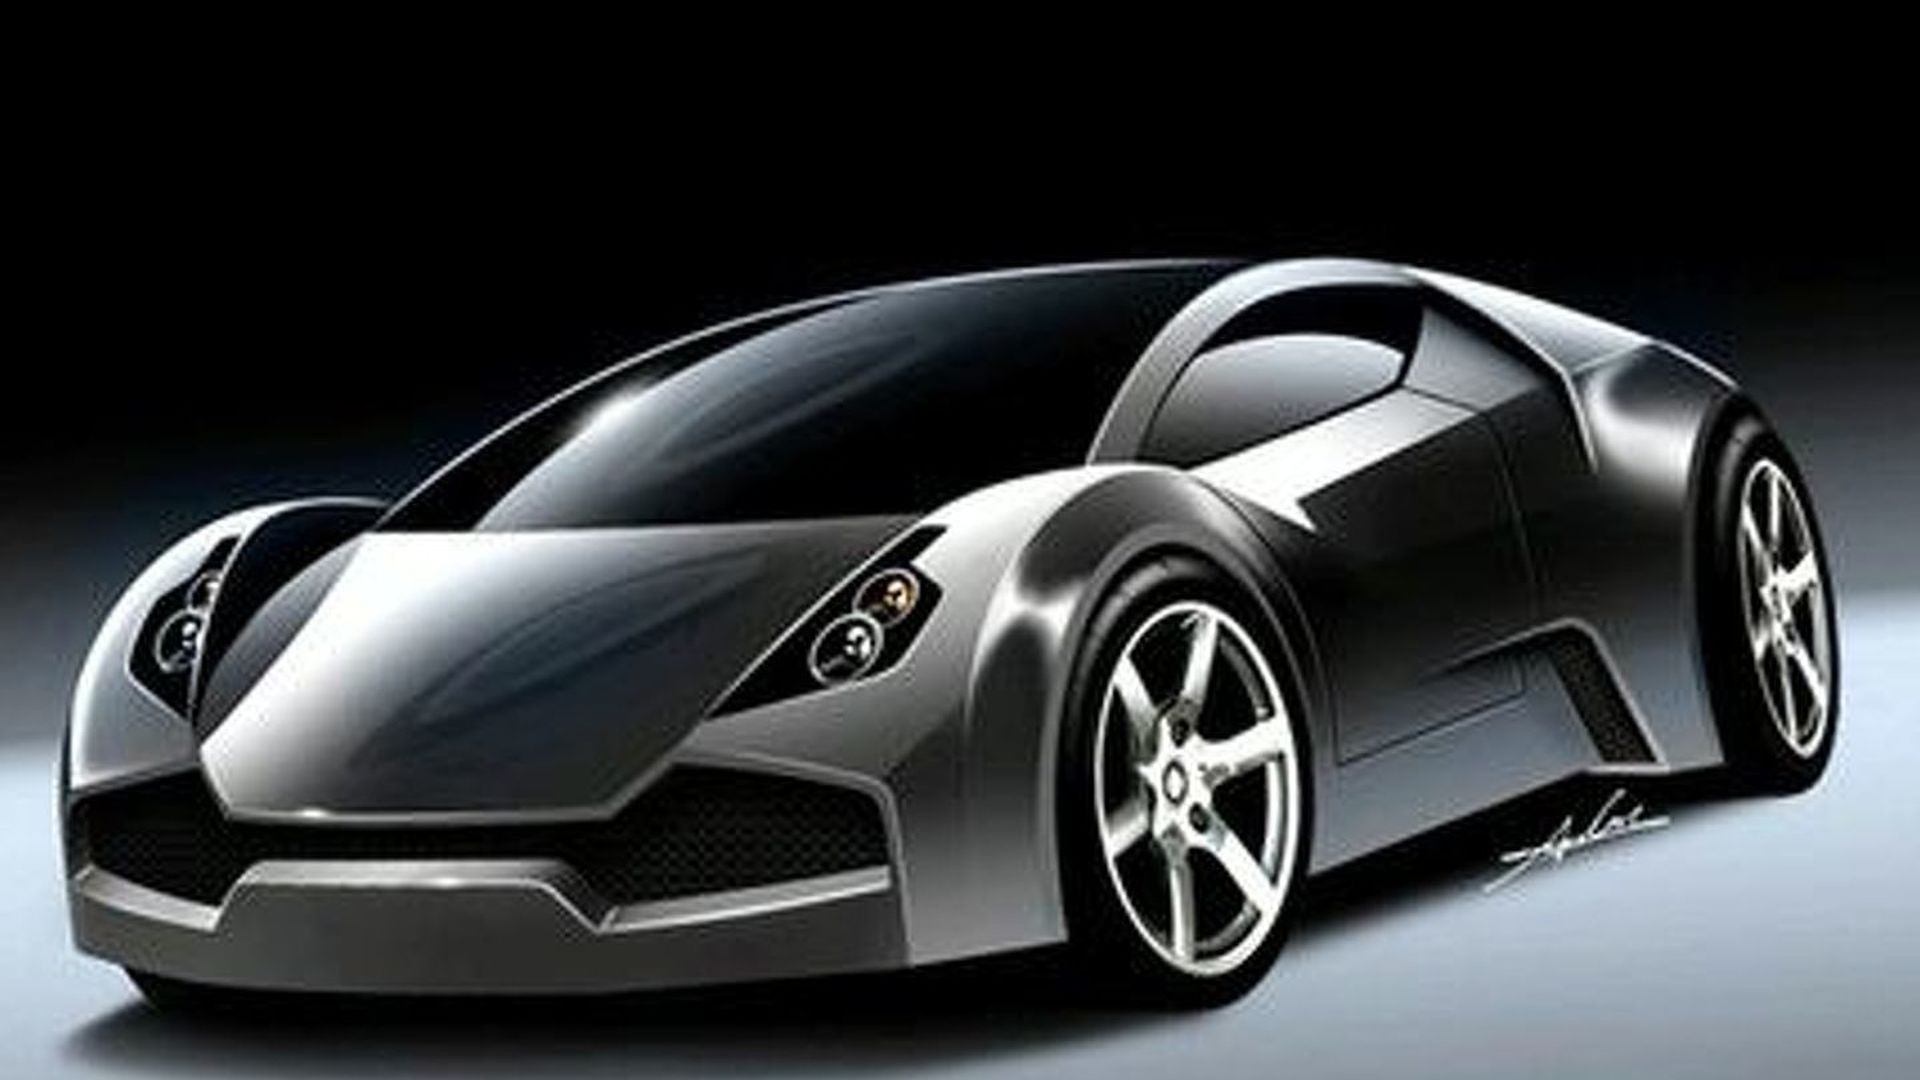 JJAD Project 001: Affordable, Light and Powerful Sports Car